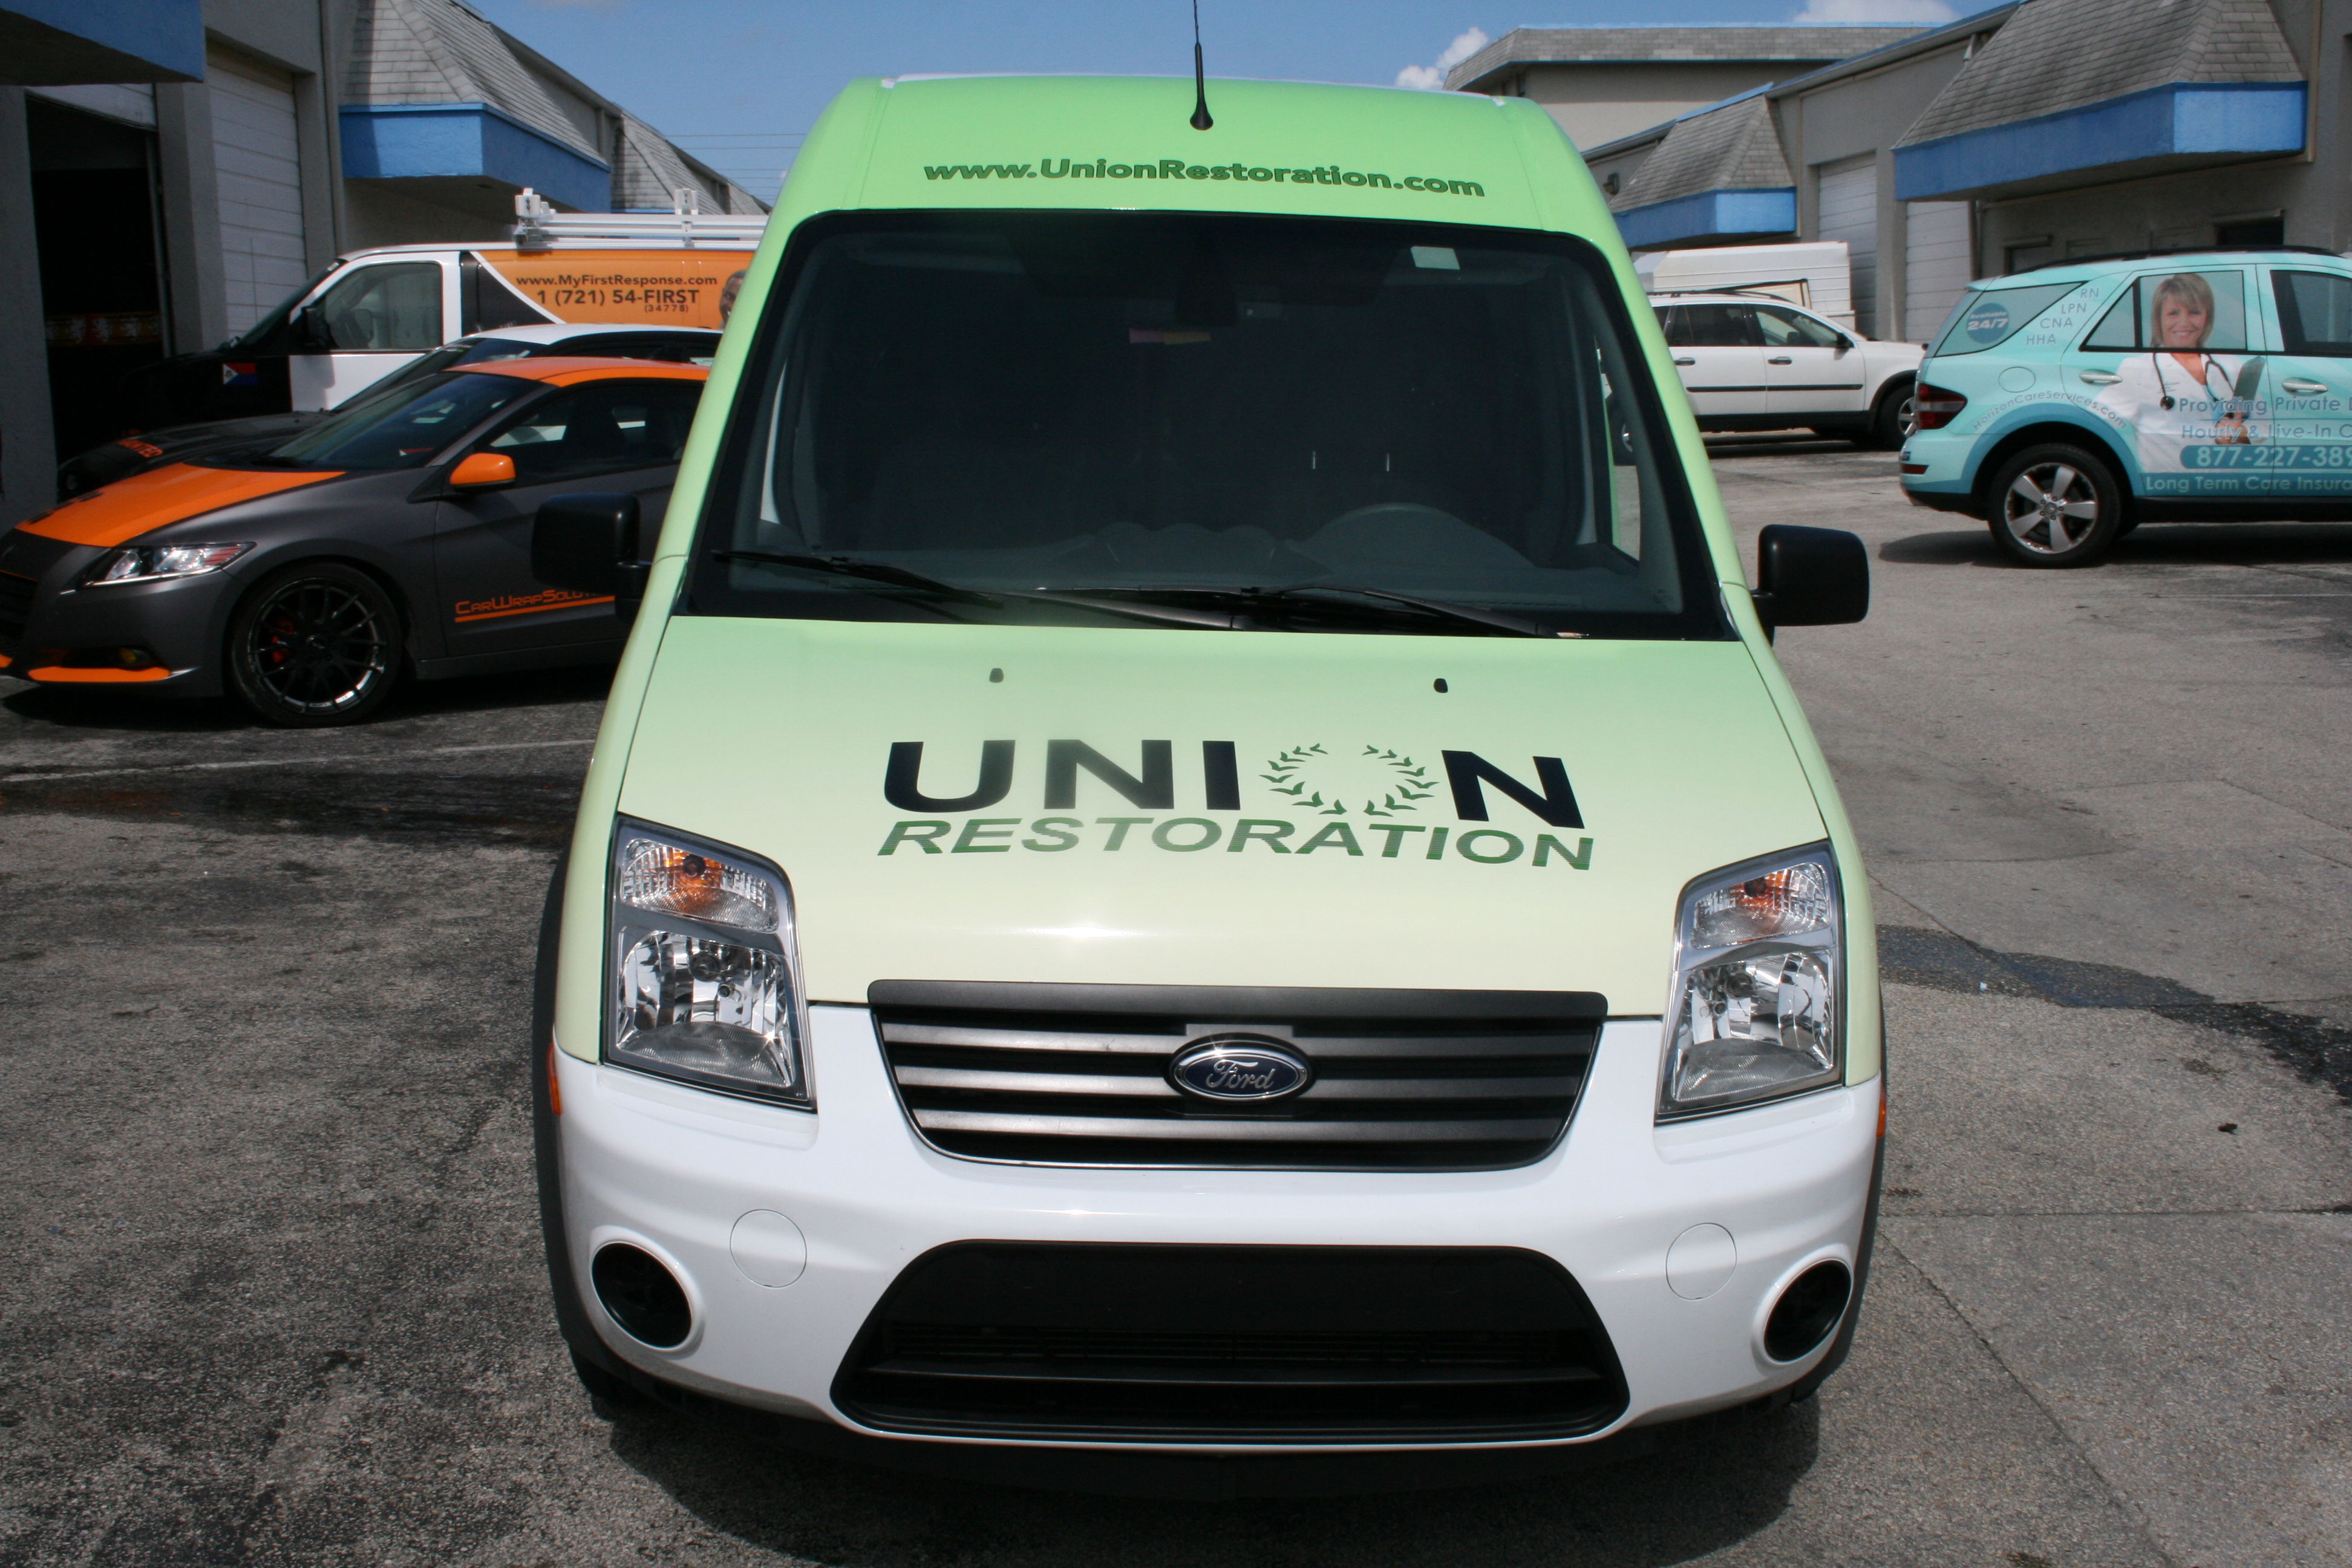 Ford Transit Connect Van >> Mold Restoration Ford Transit Connect 3M Vinyl Vehicle Wrap Fort Lauderdale Florida